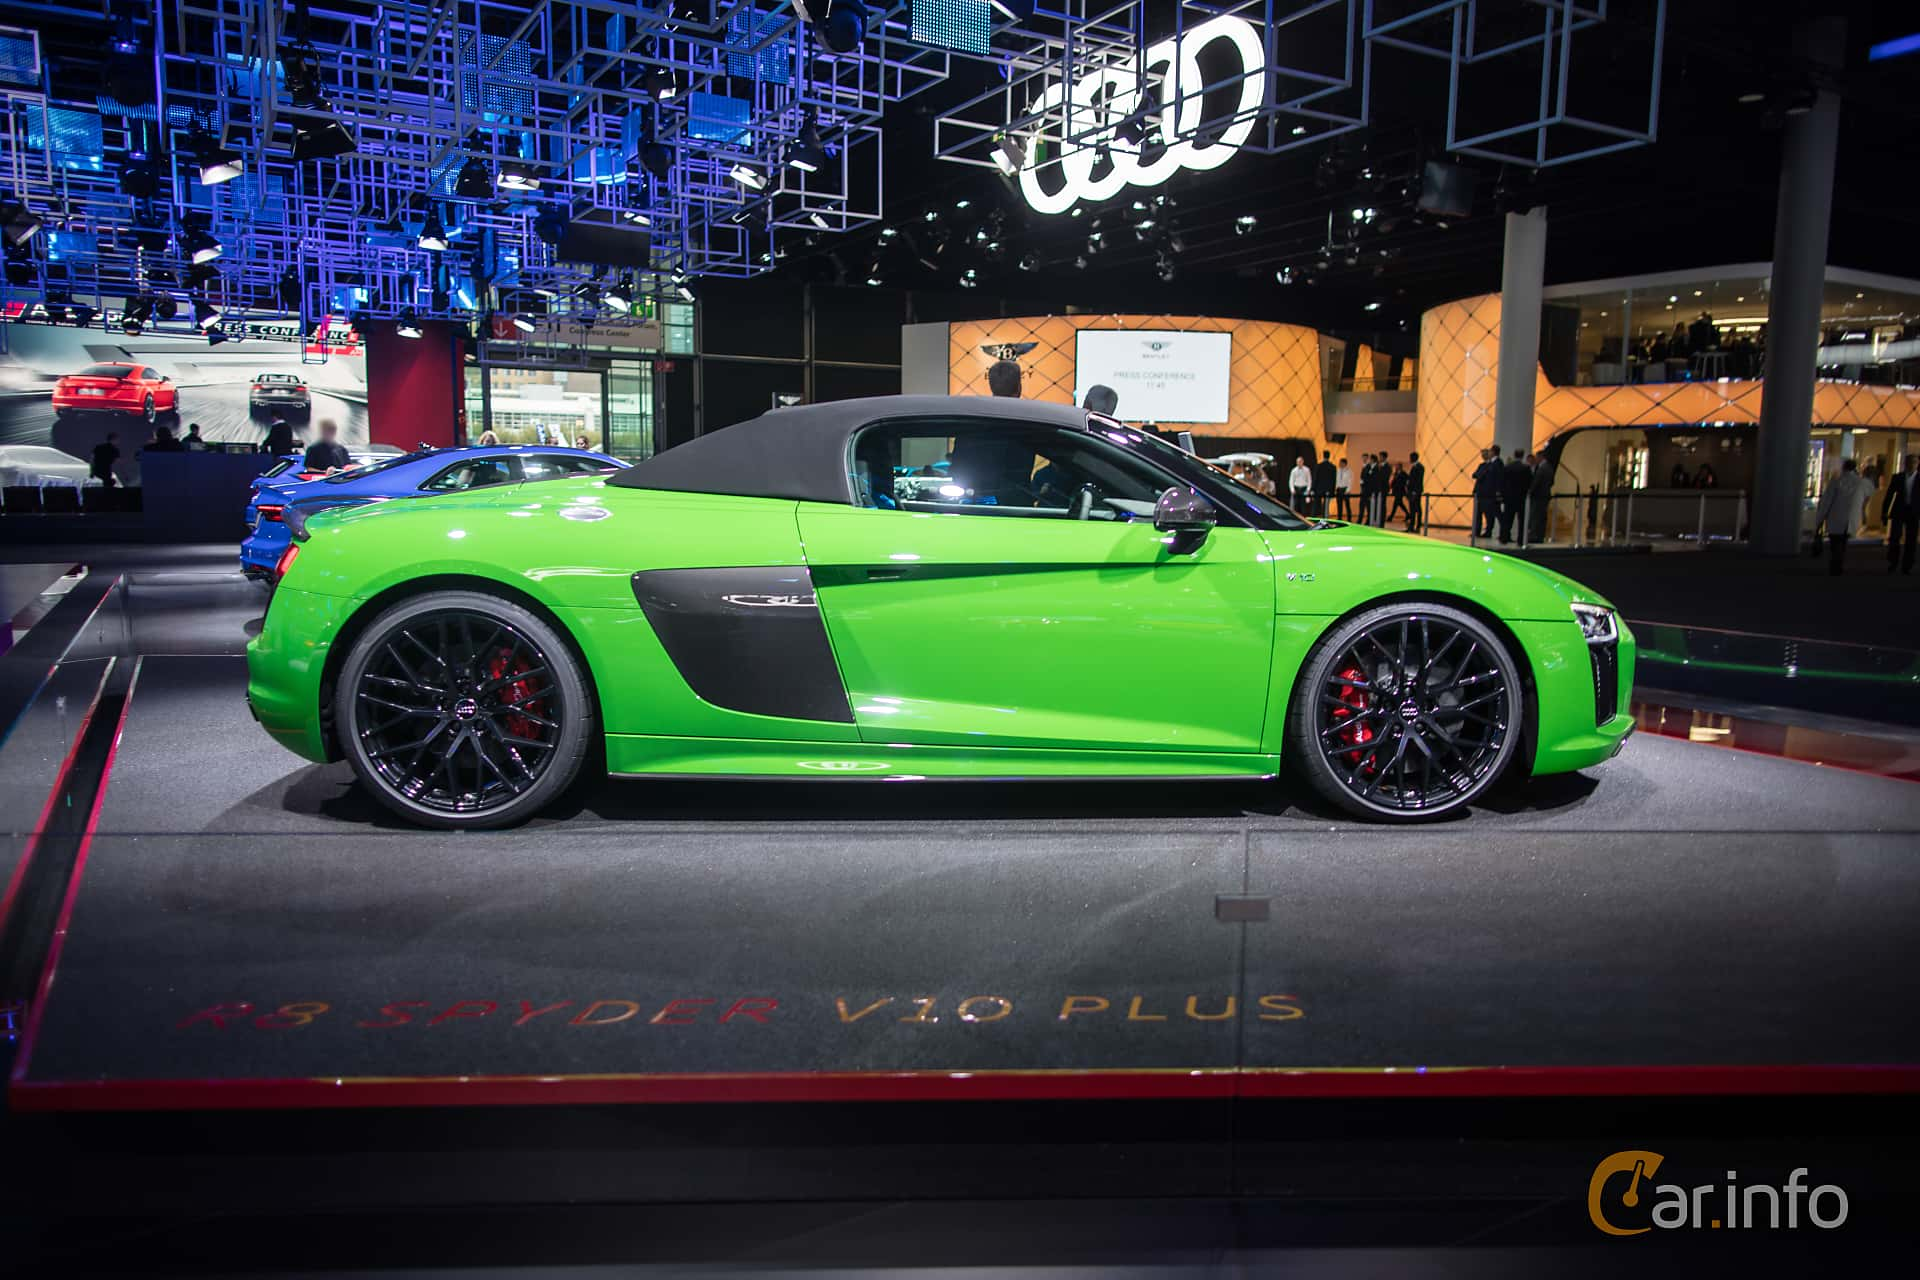 Rent audi r8 dallas 11